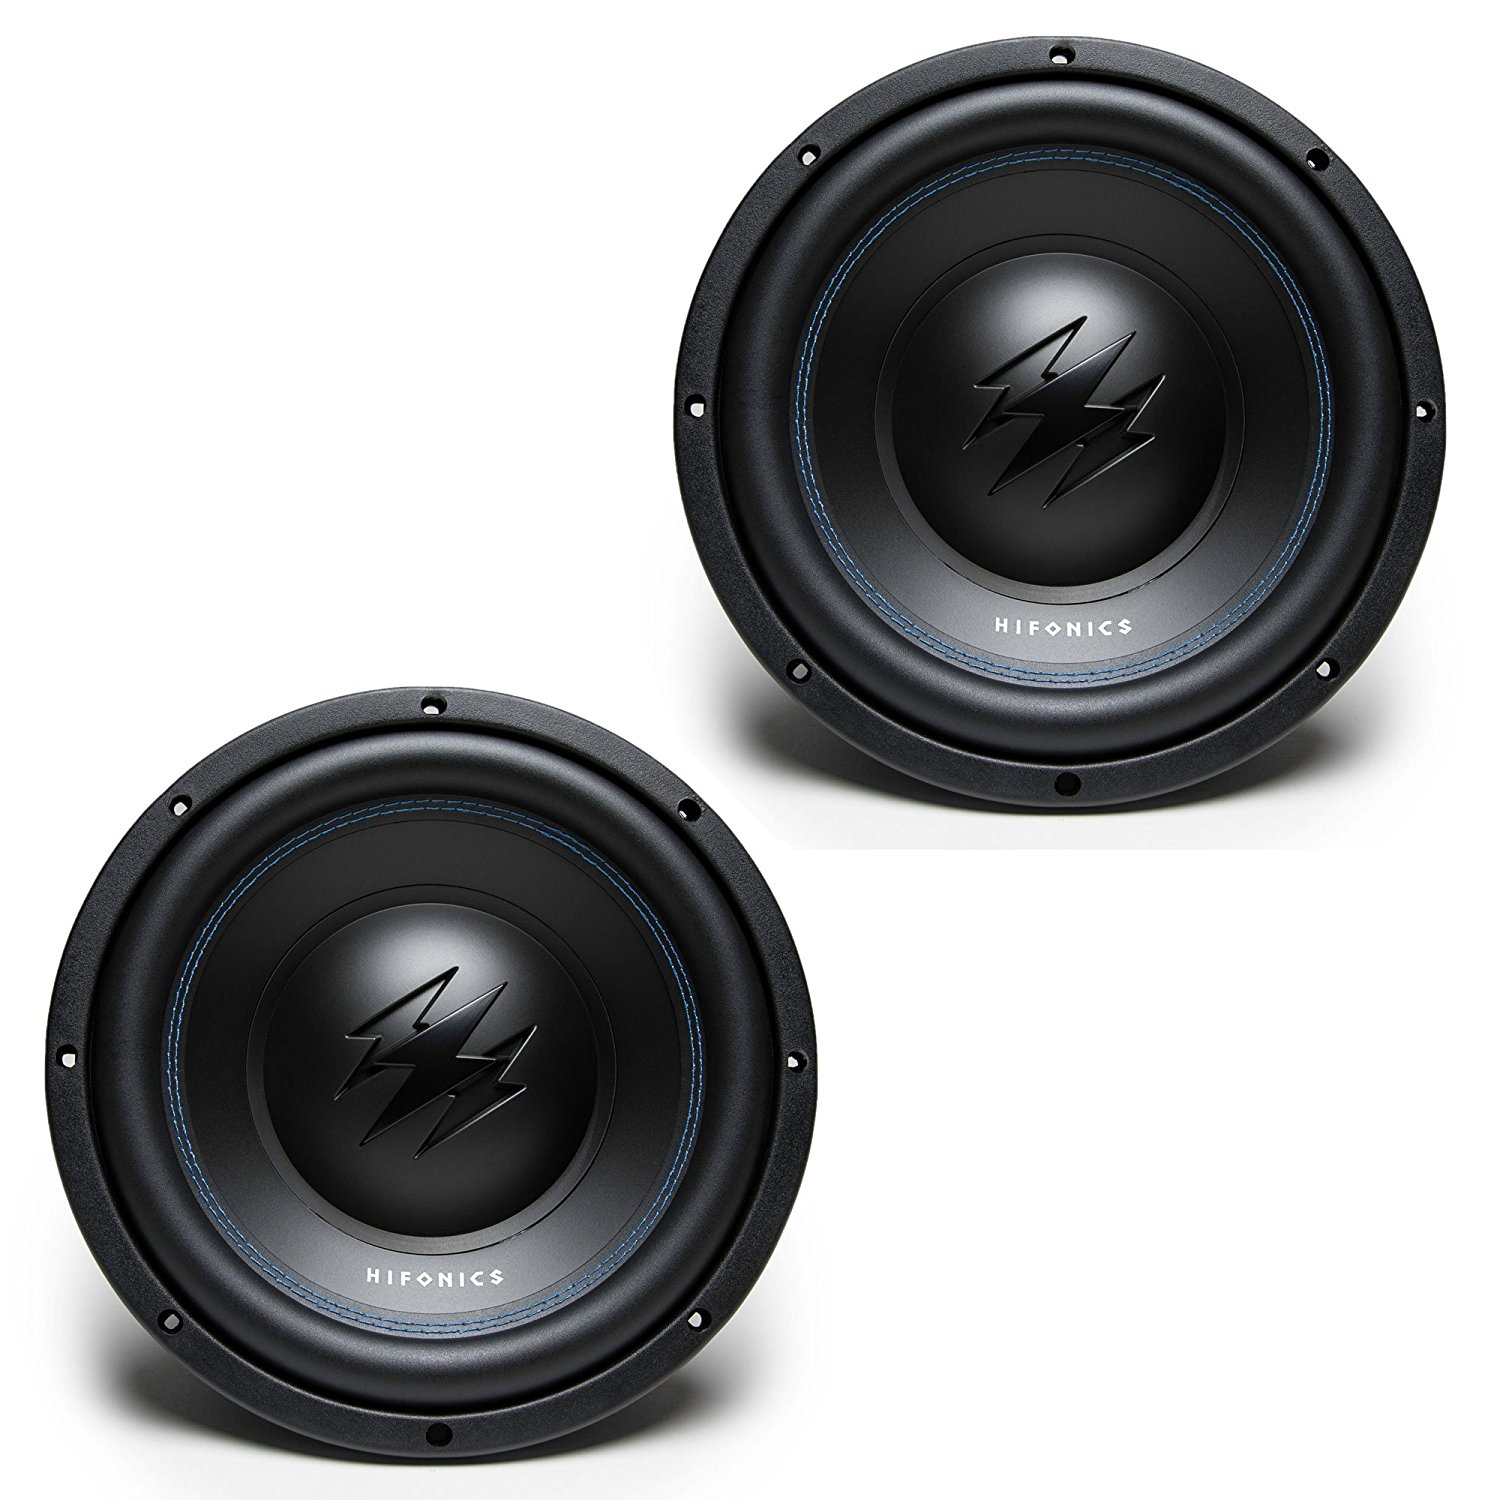 Cheap 8 Inch Subwoofers, find 8 Inch Subwoofers deals on